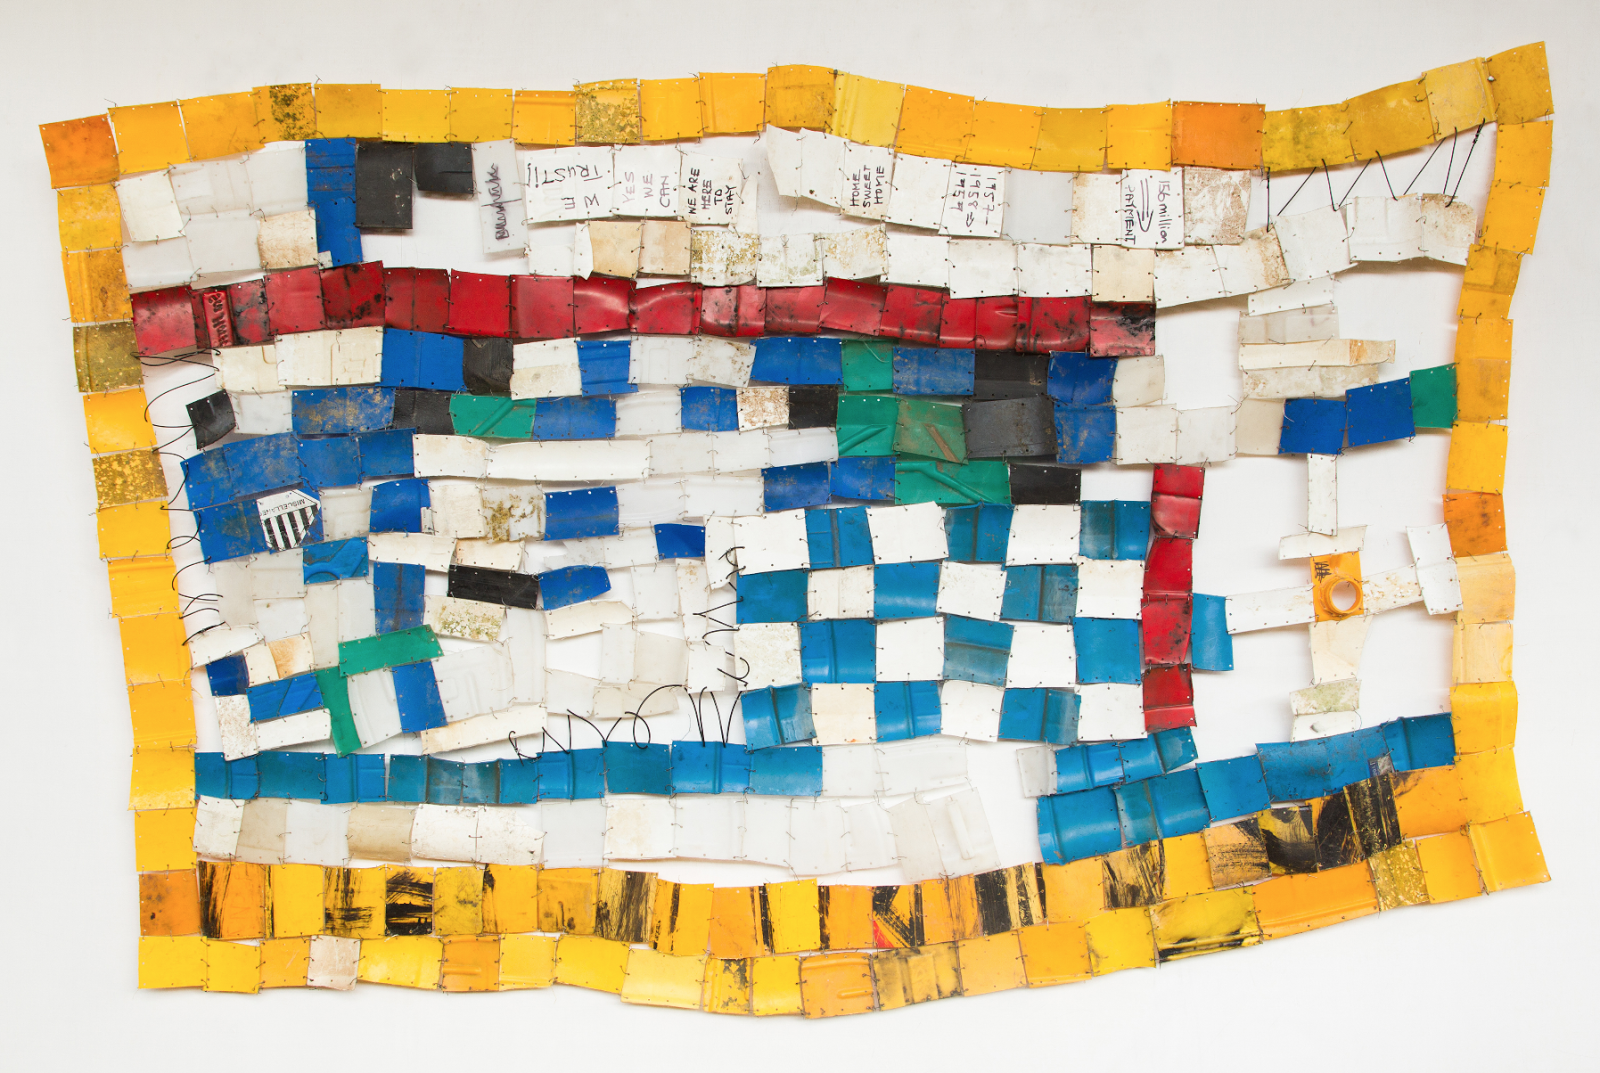 Serge Attukwei Clottey,  American Lottery , 2015, plastic, wire and oil paint, 51 x 94 in.